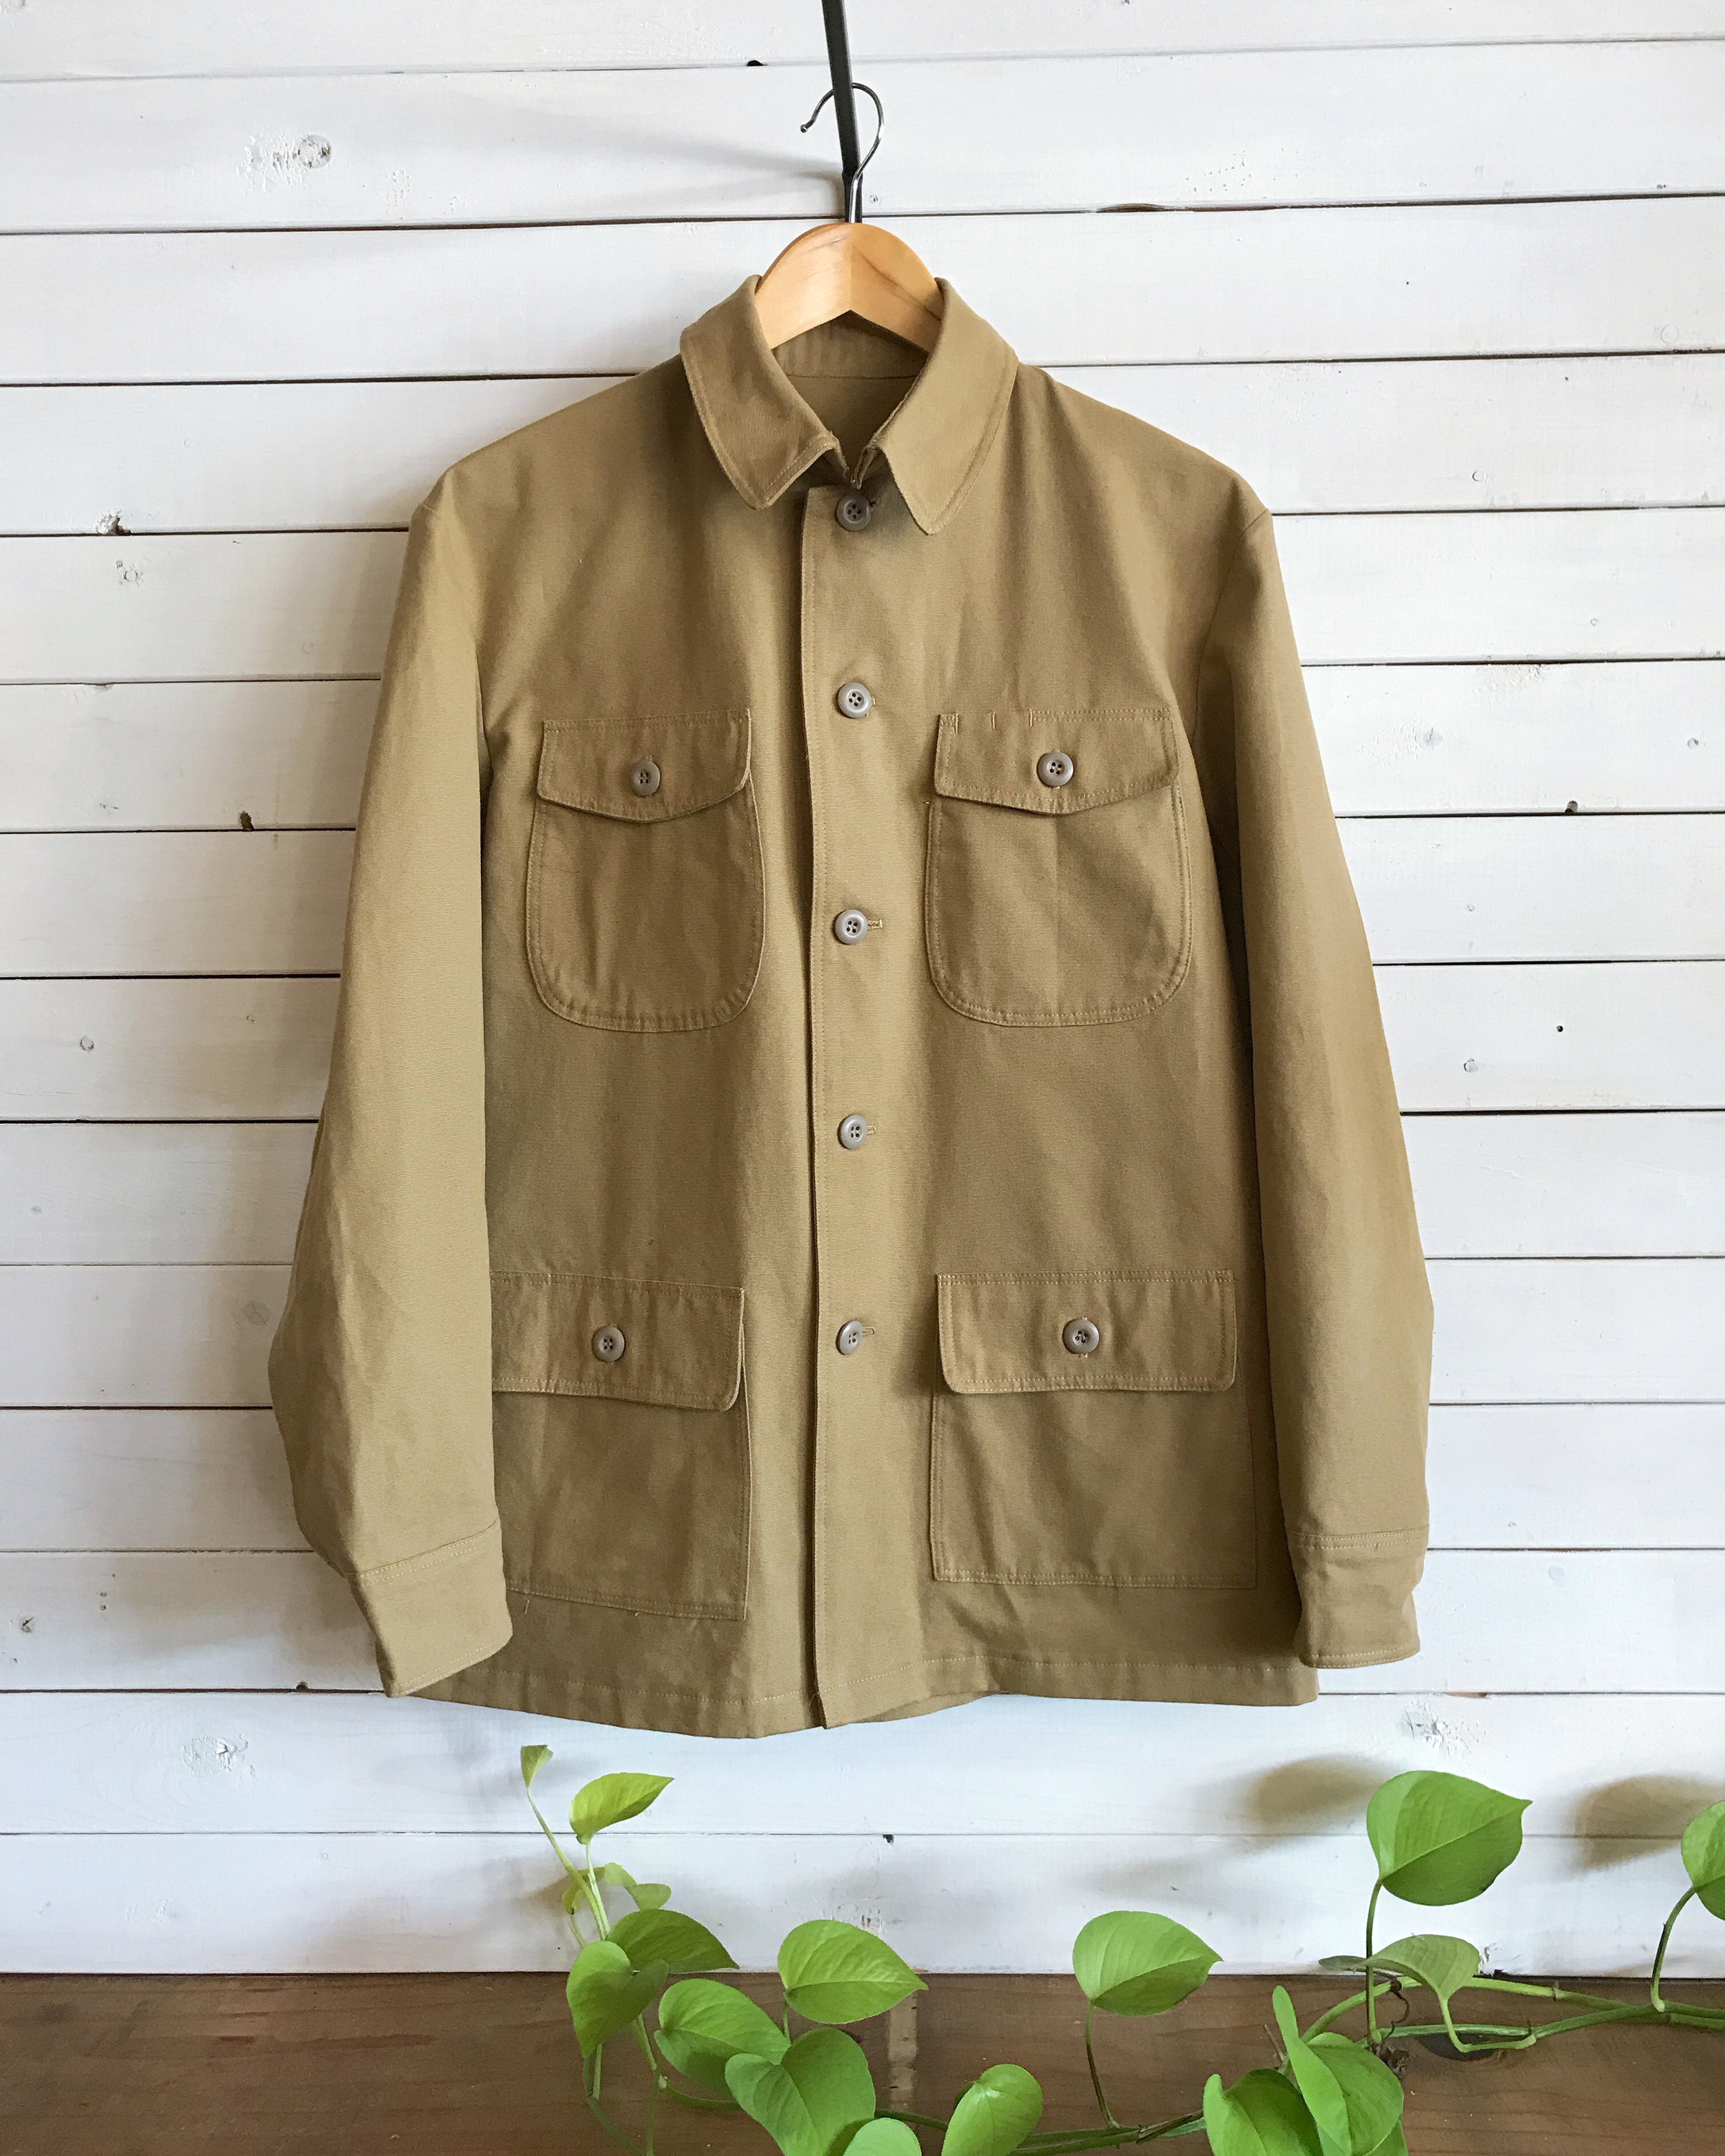 J's Coat Updated, June 2018 - Updated pocket size w/ pen pocket placement and slimmer fit